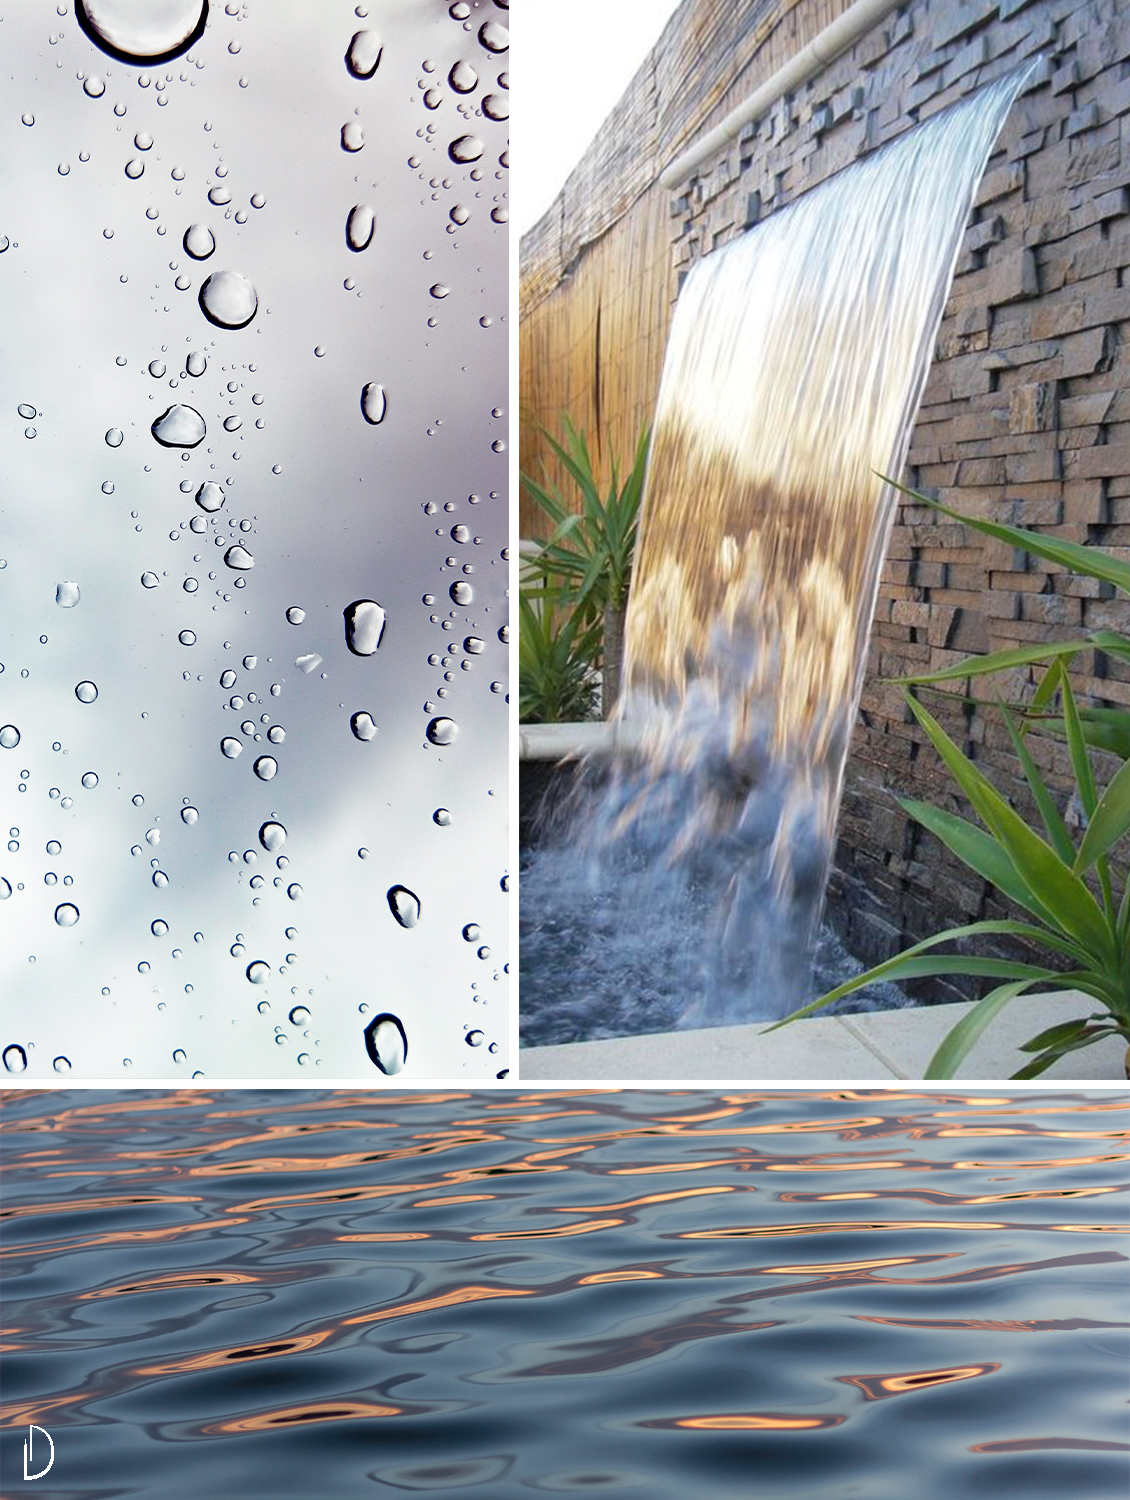 Moodboard to show the power of water in a biophilic design: drops on a clear background, the texture of waves and a water fountain.